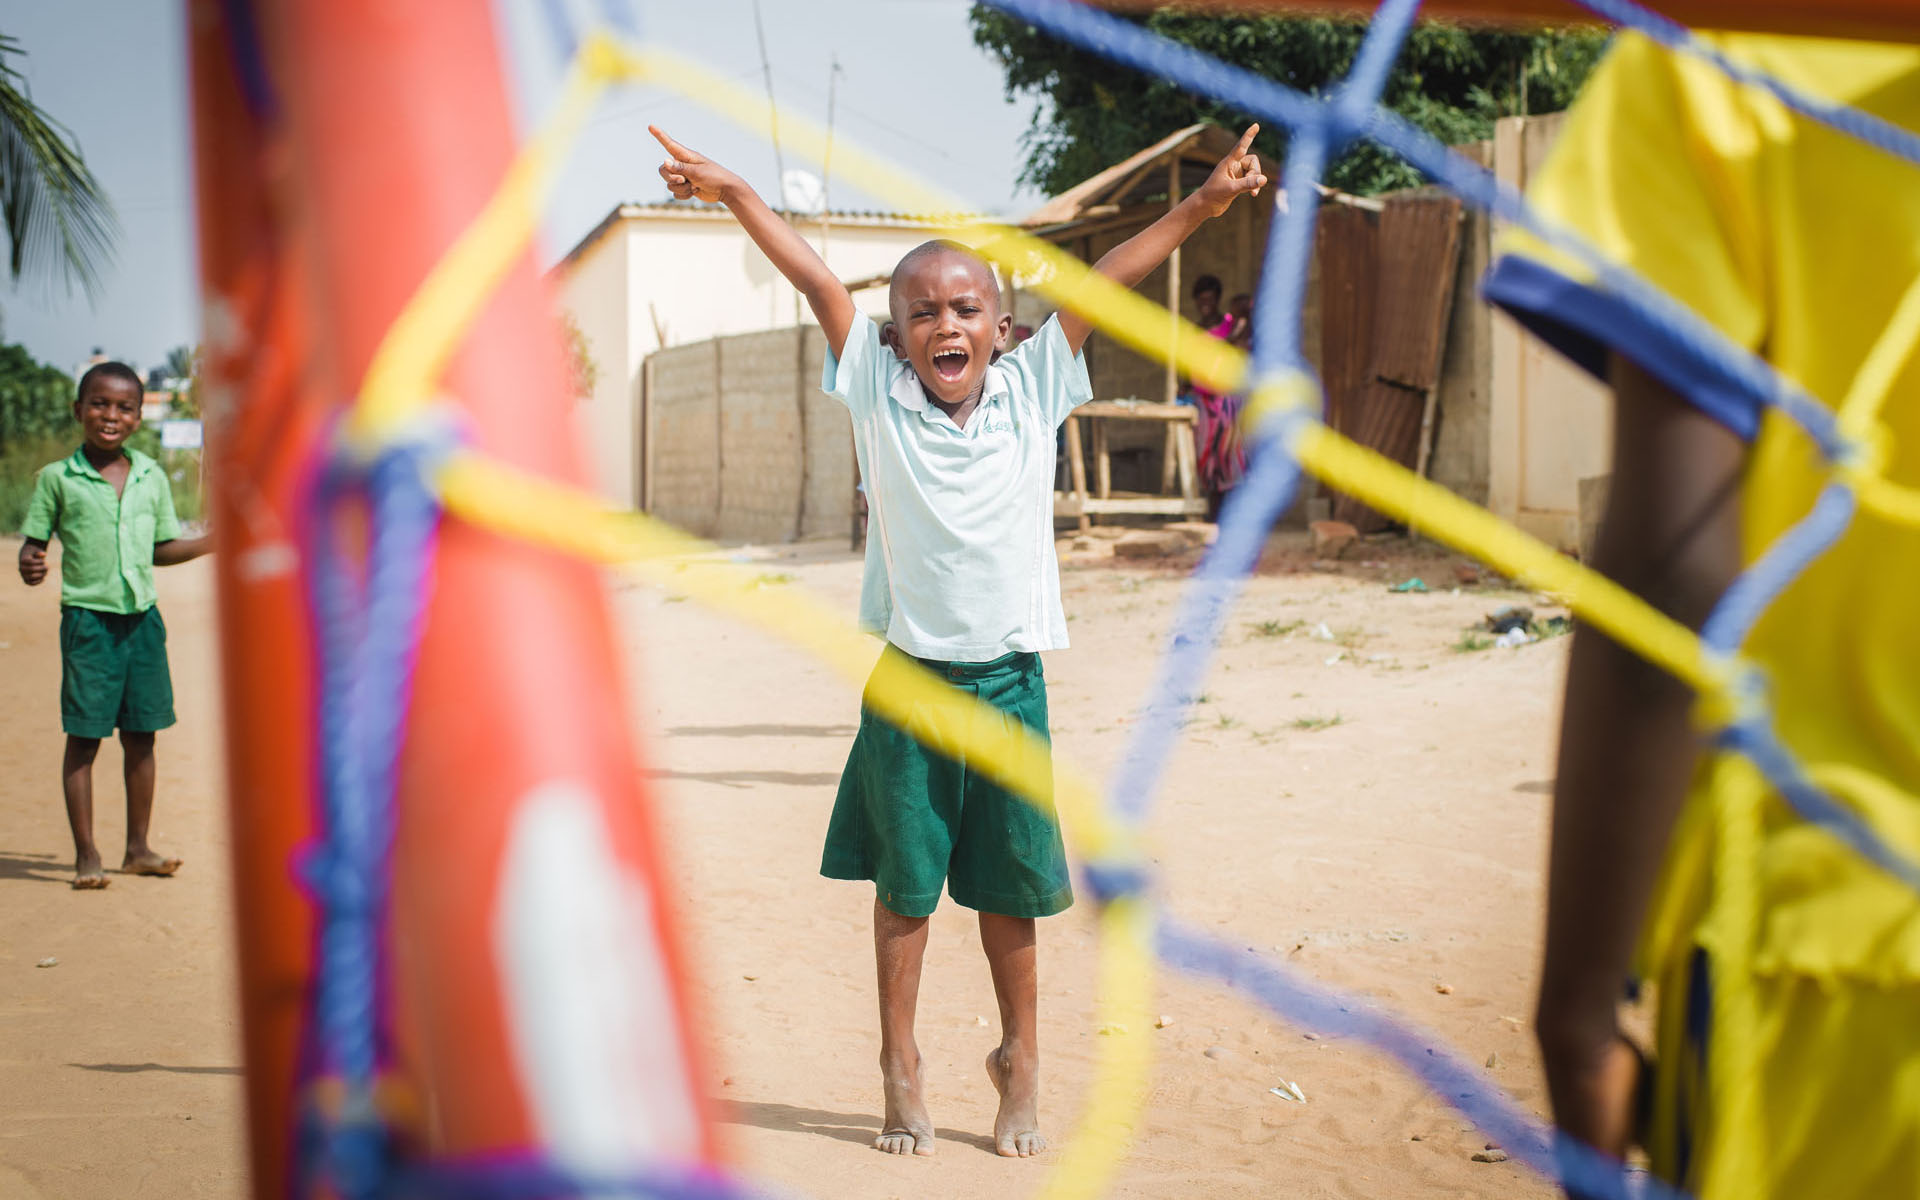 Segnon plays soccer at his Compassion center in Togo.